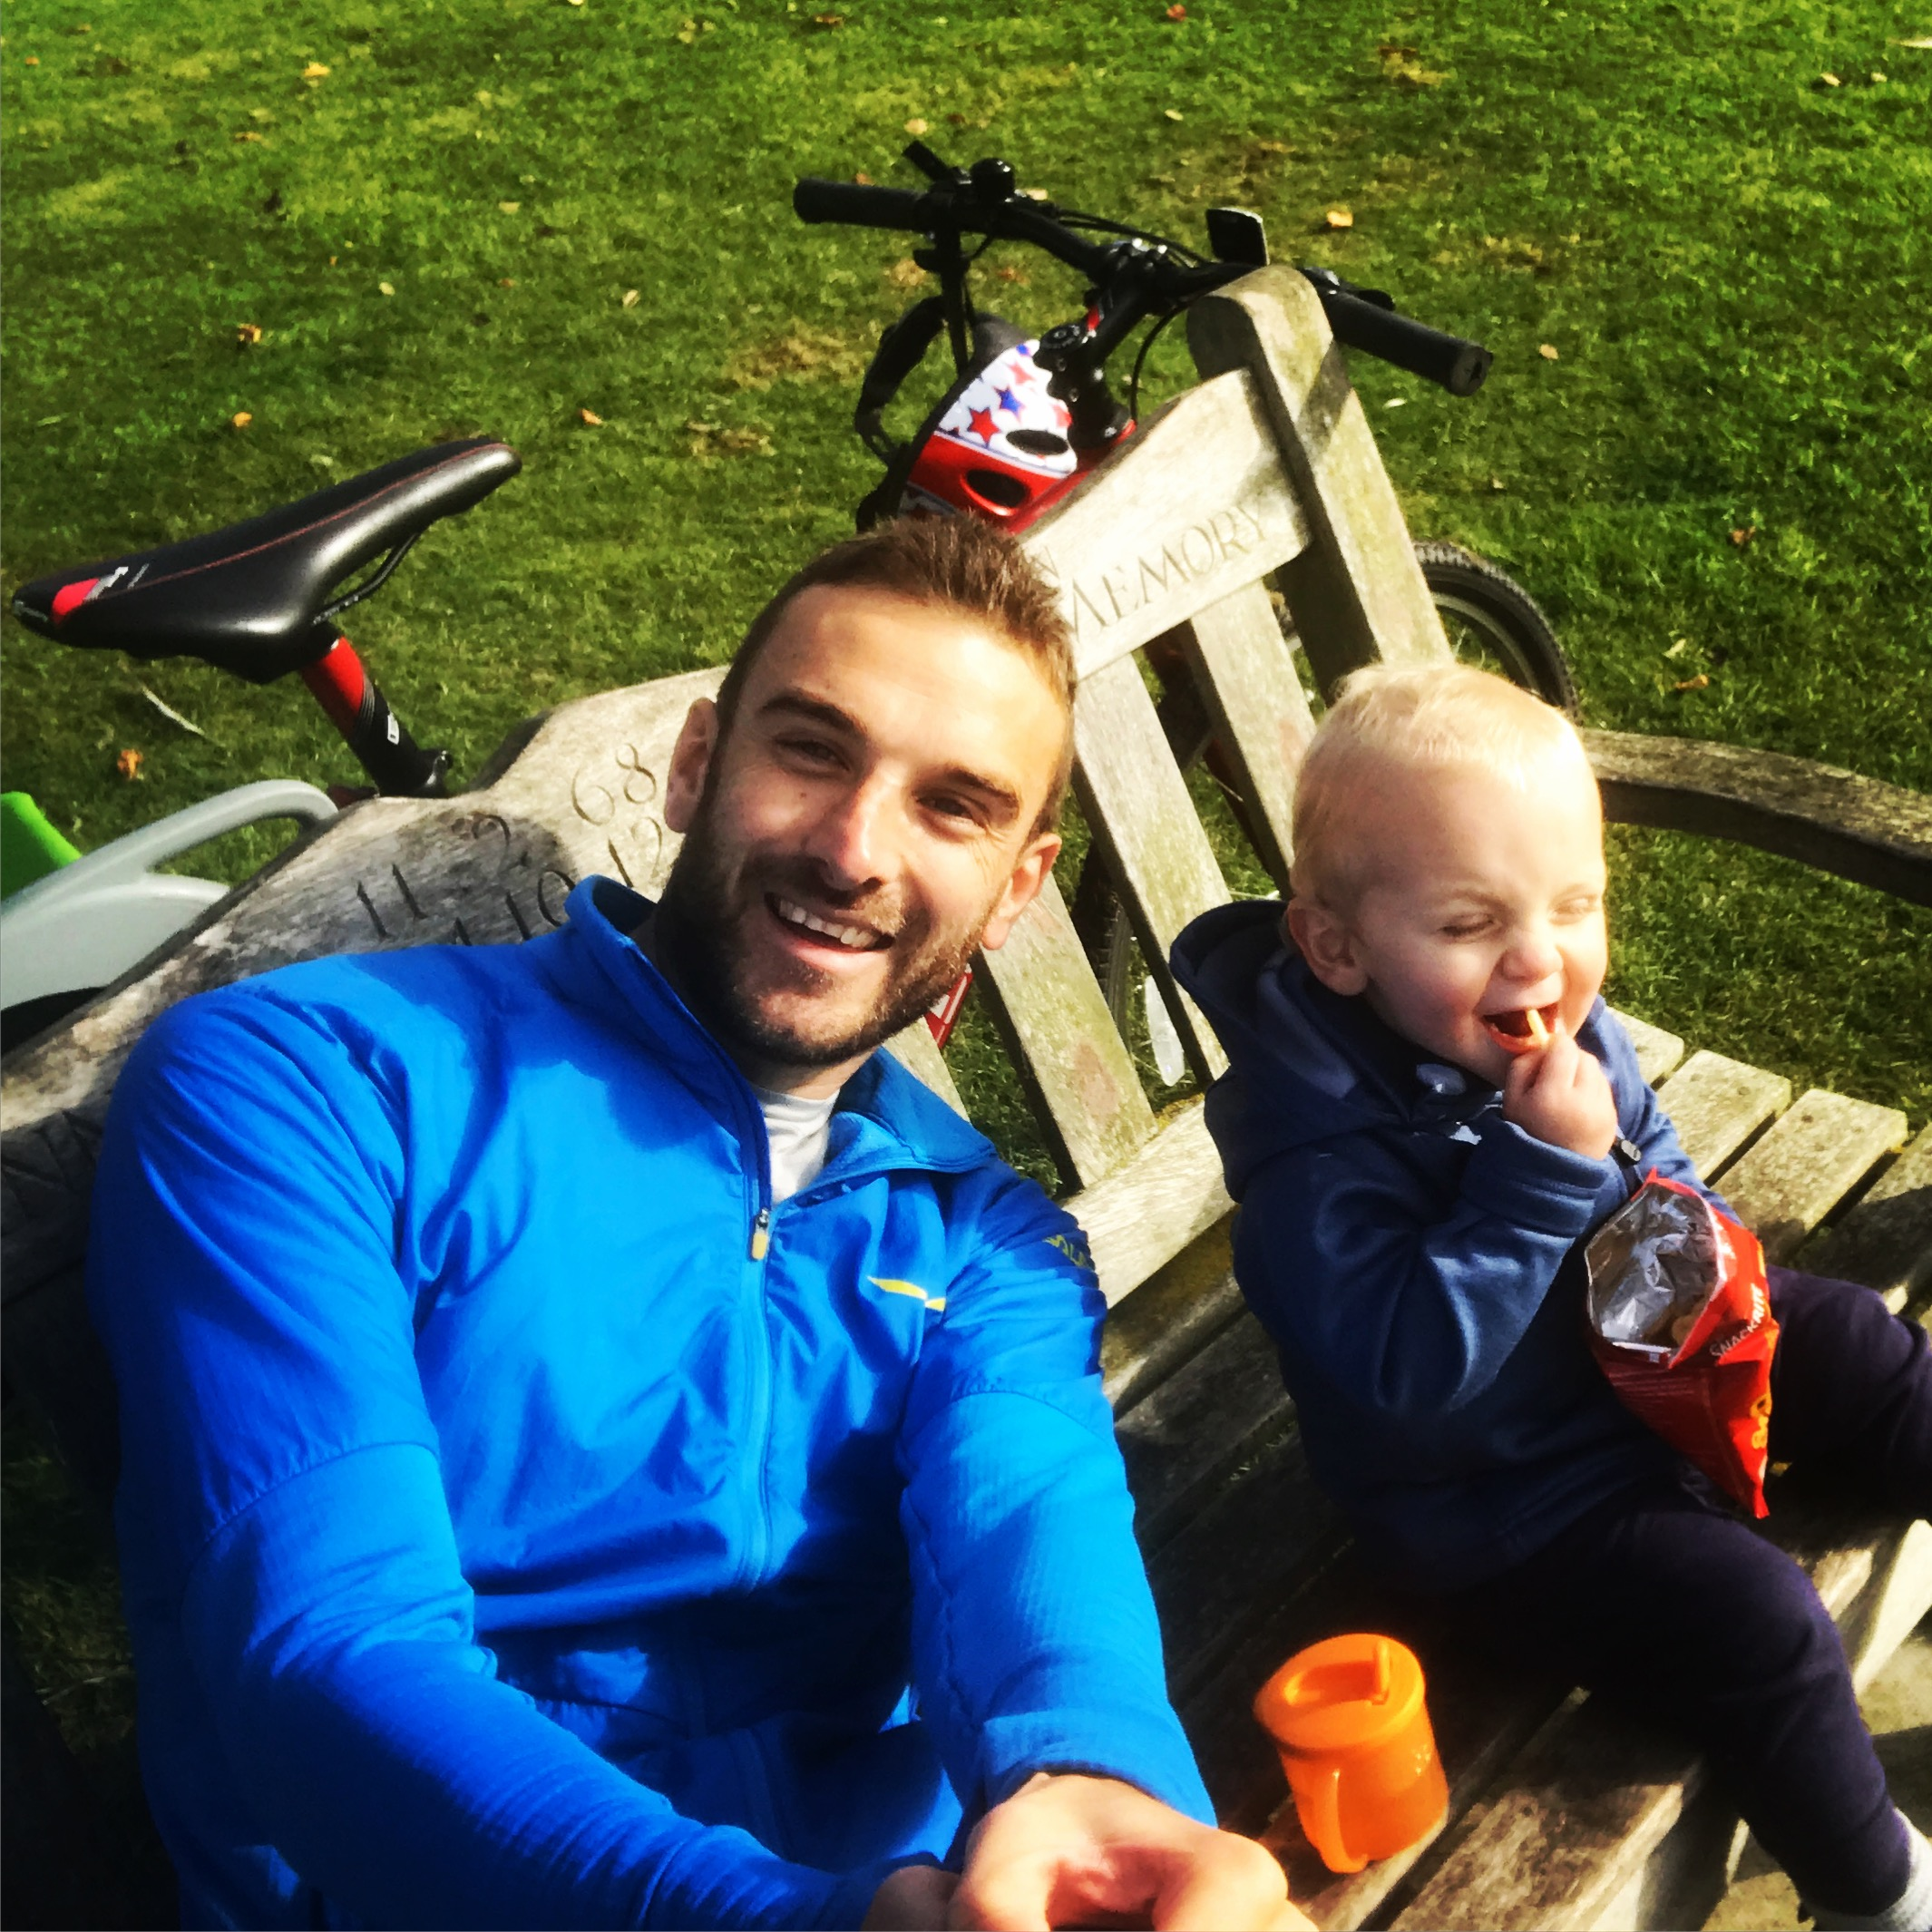 father-son day out